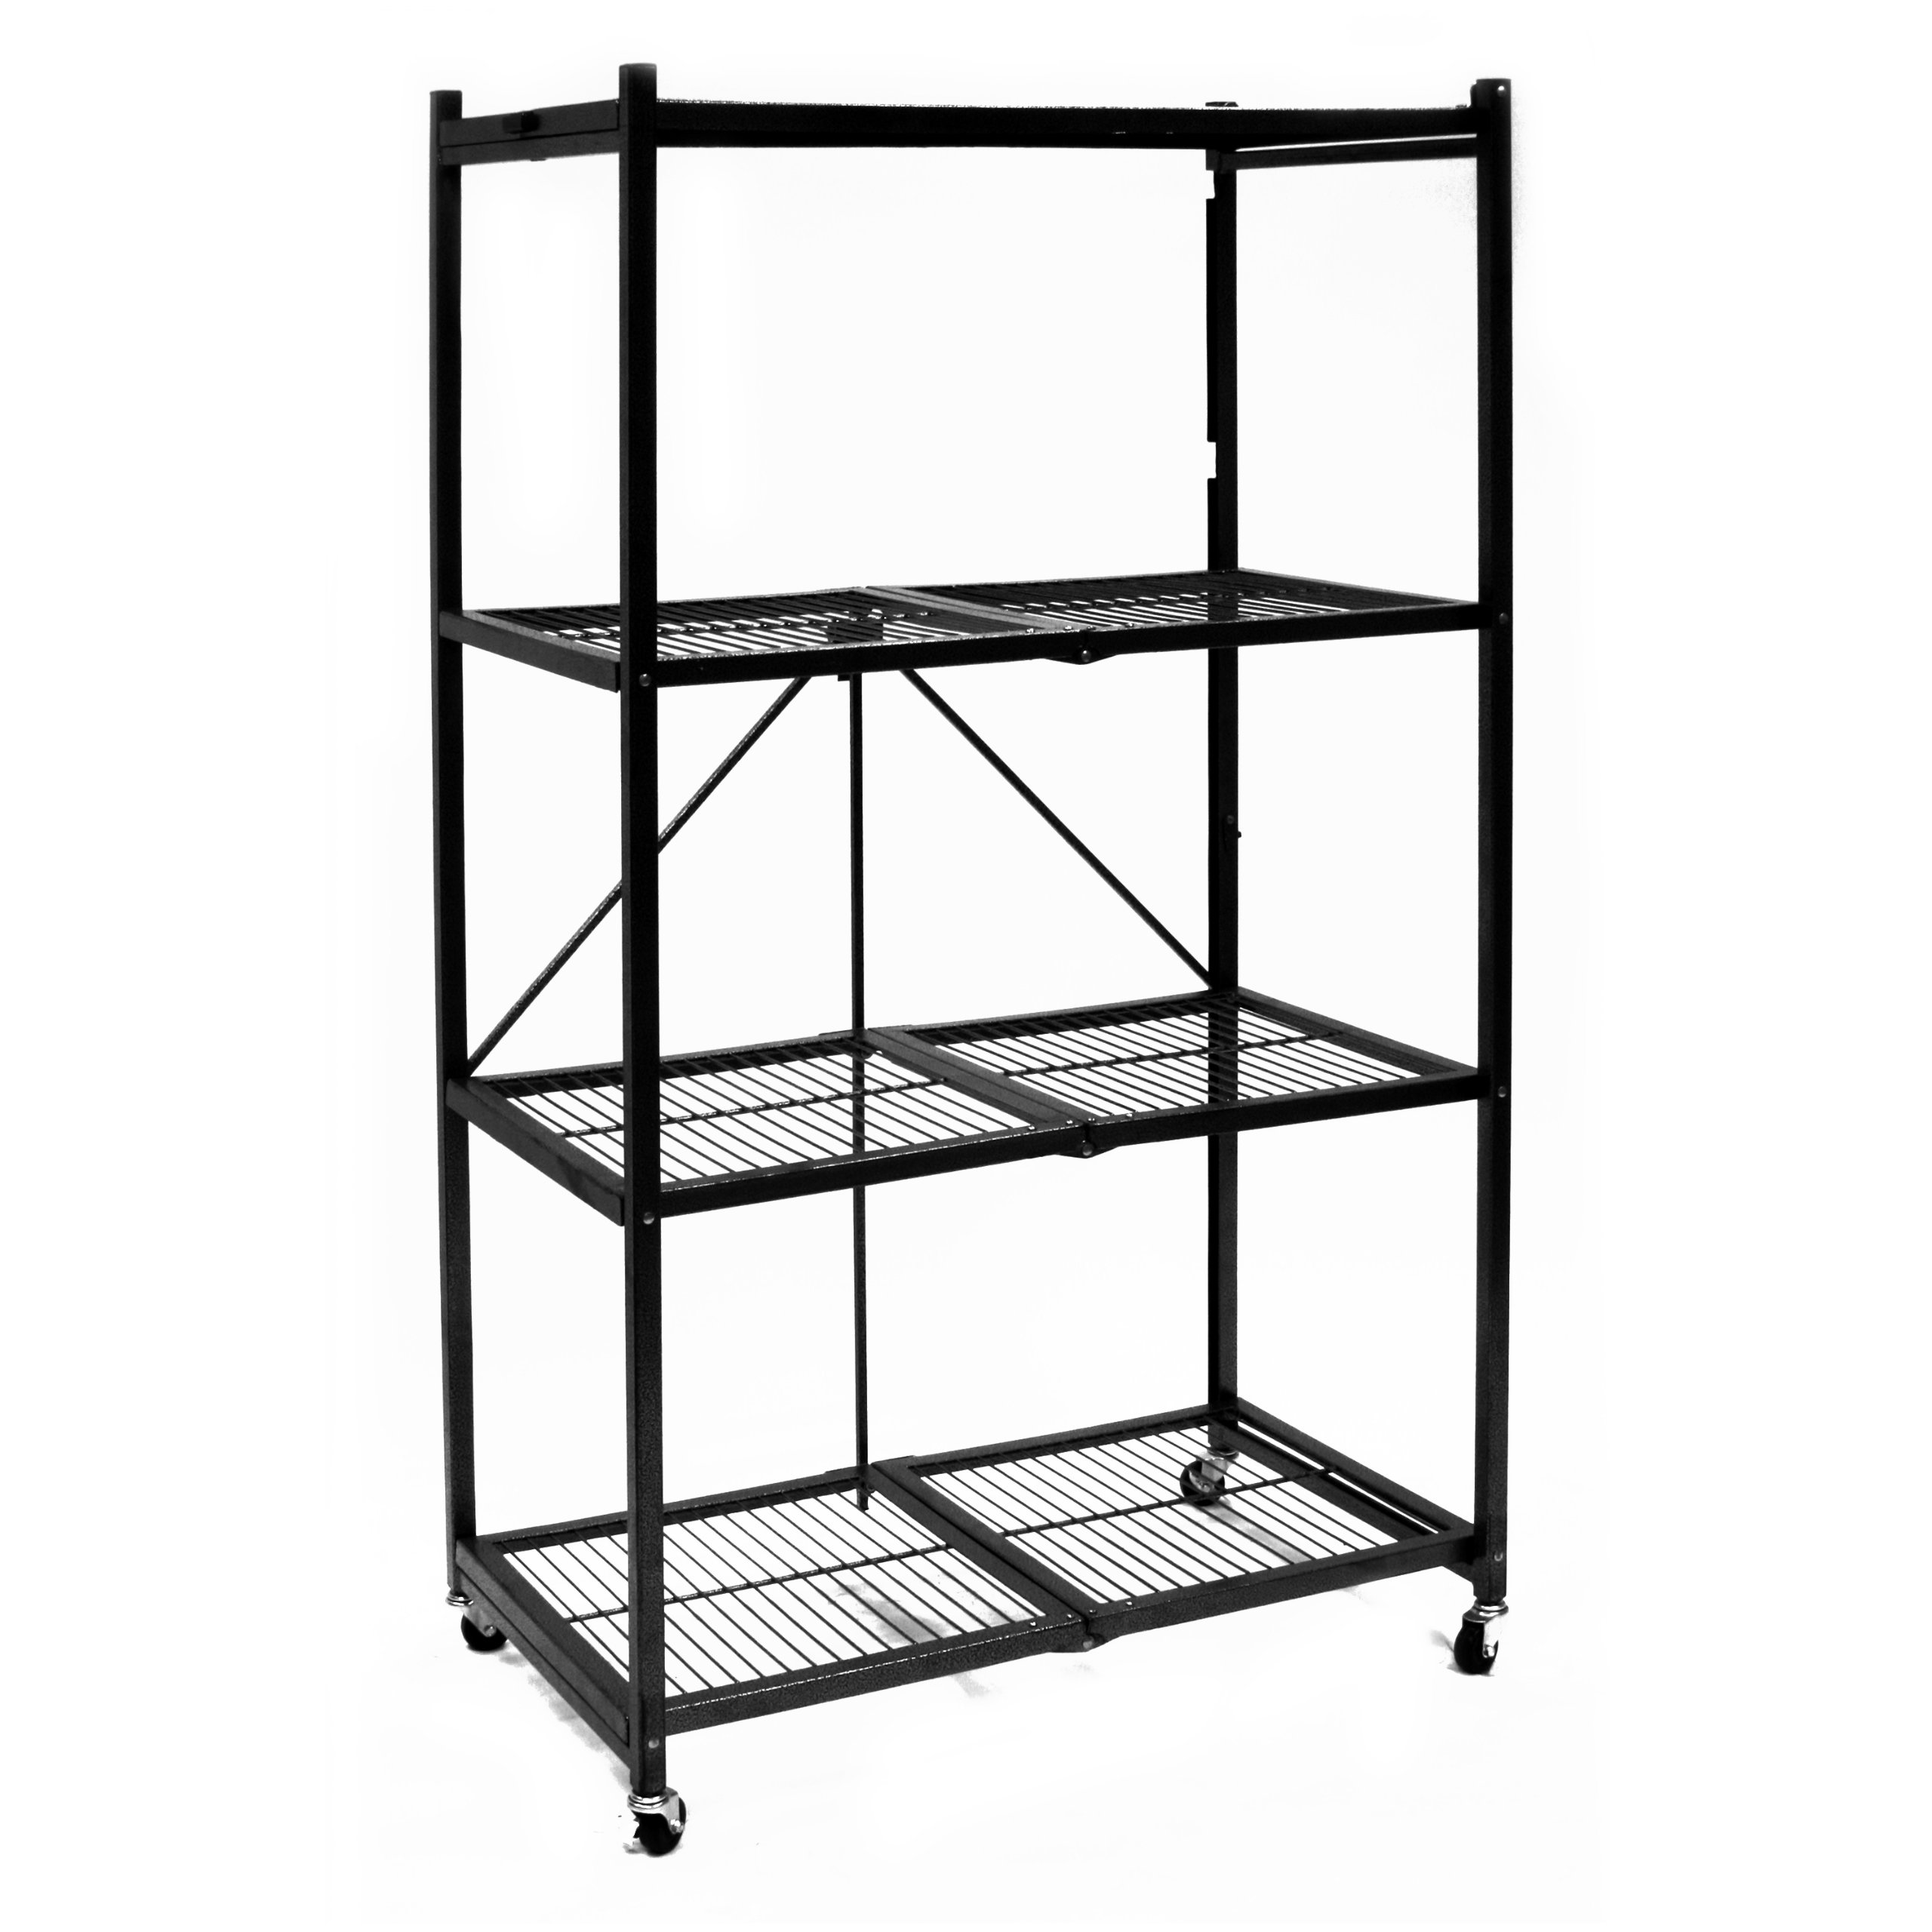 Origami R5-01W General Purpose 4-Shelf Steel Collapsible Storage Rack with Wheels, Large